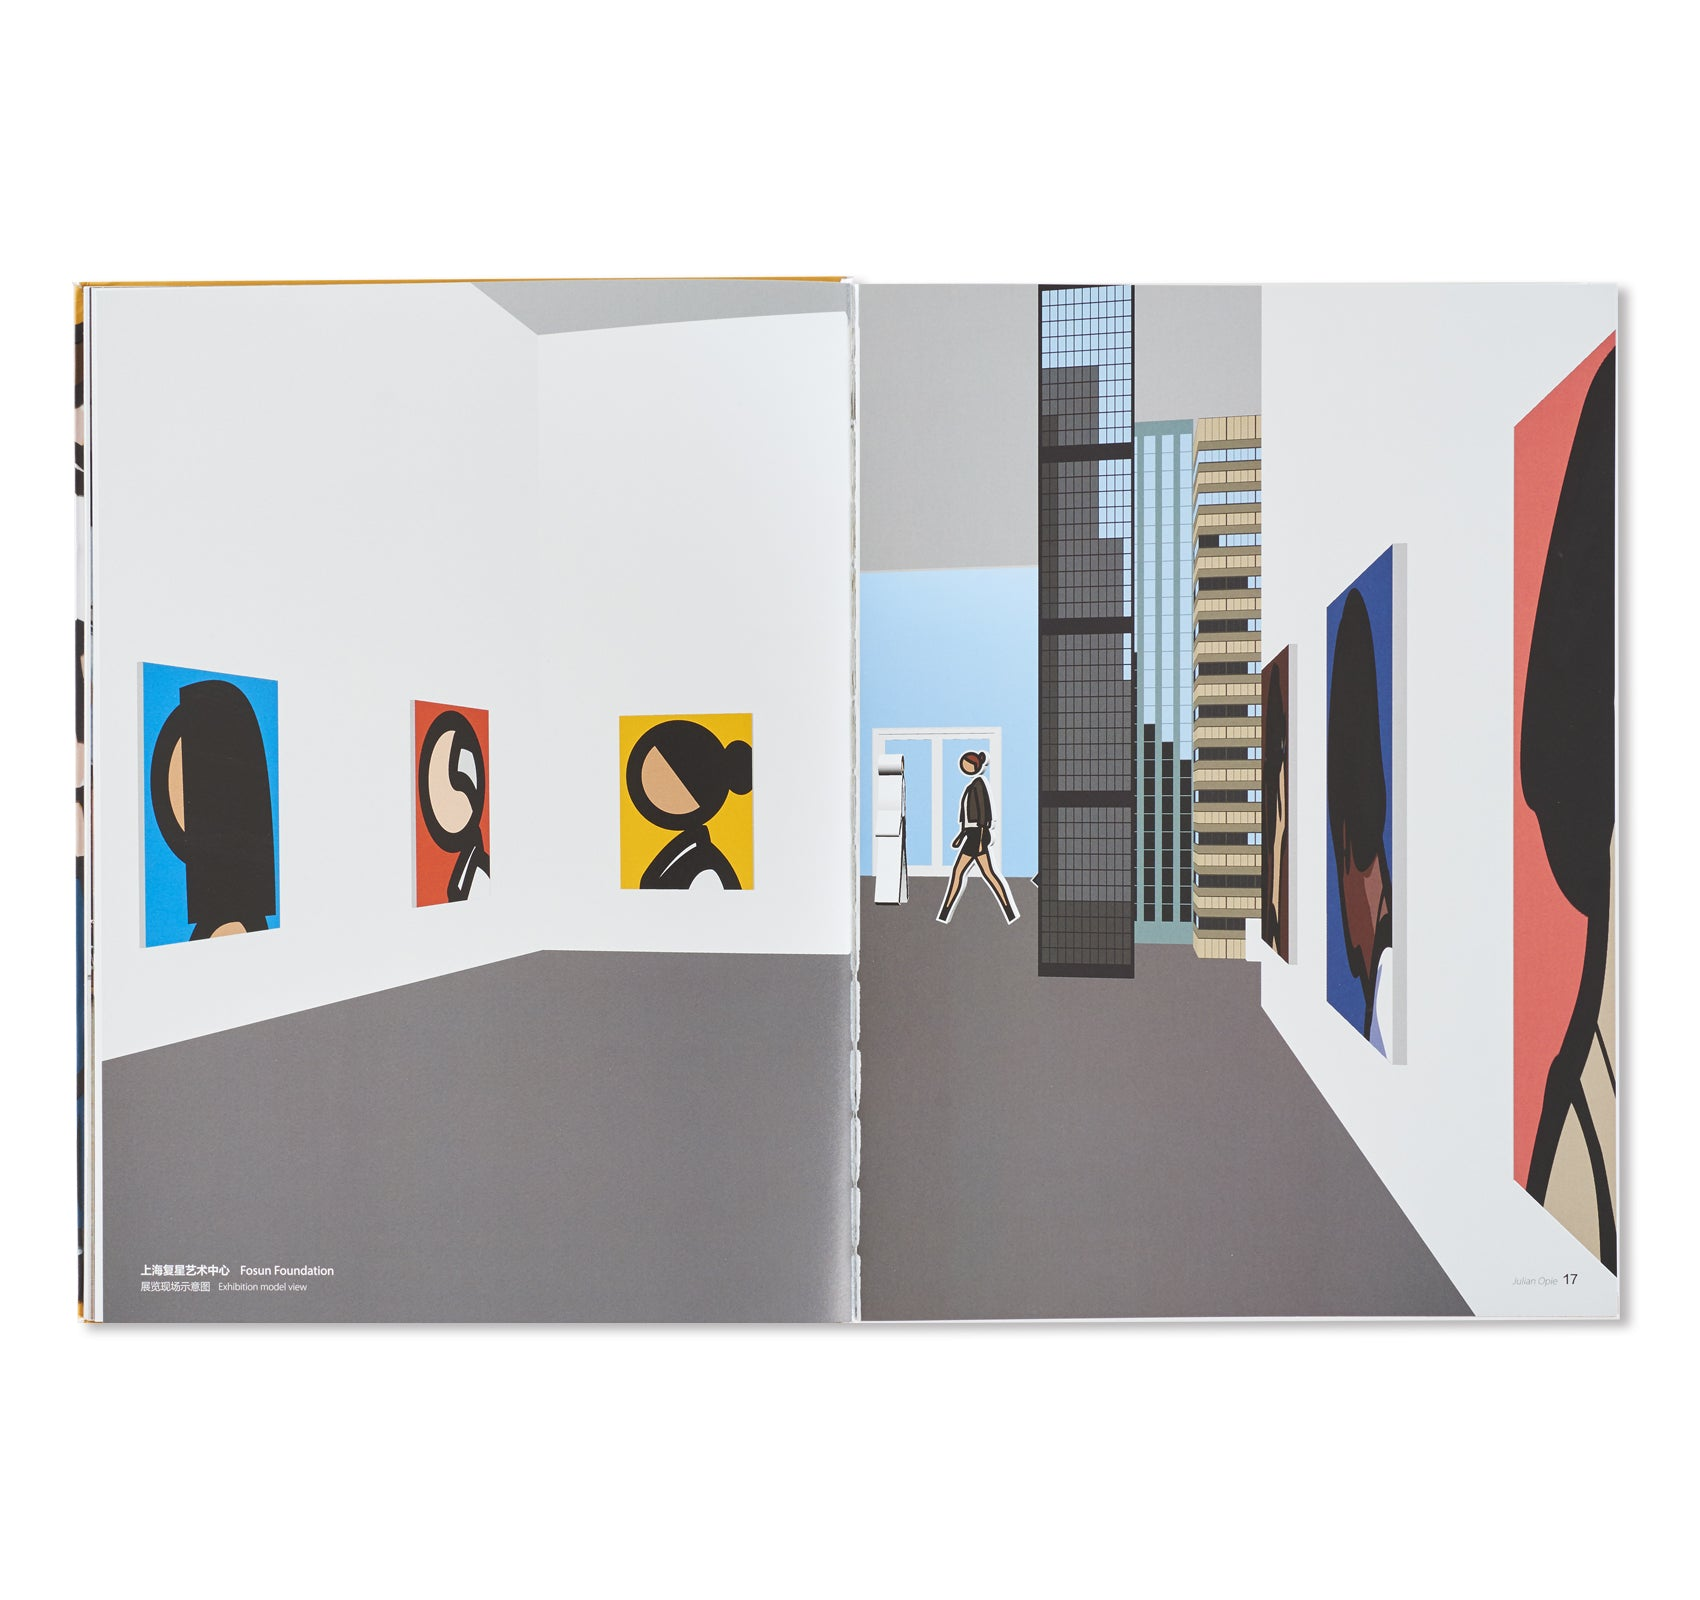 JULIAN OPIE ARTWORKS CATALOG by Julian Opie